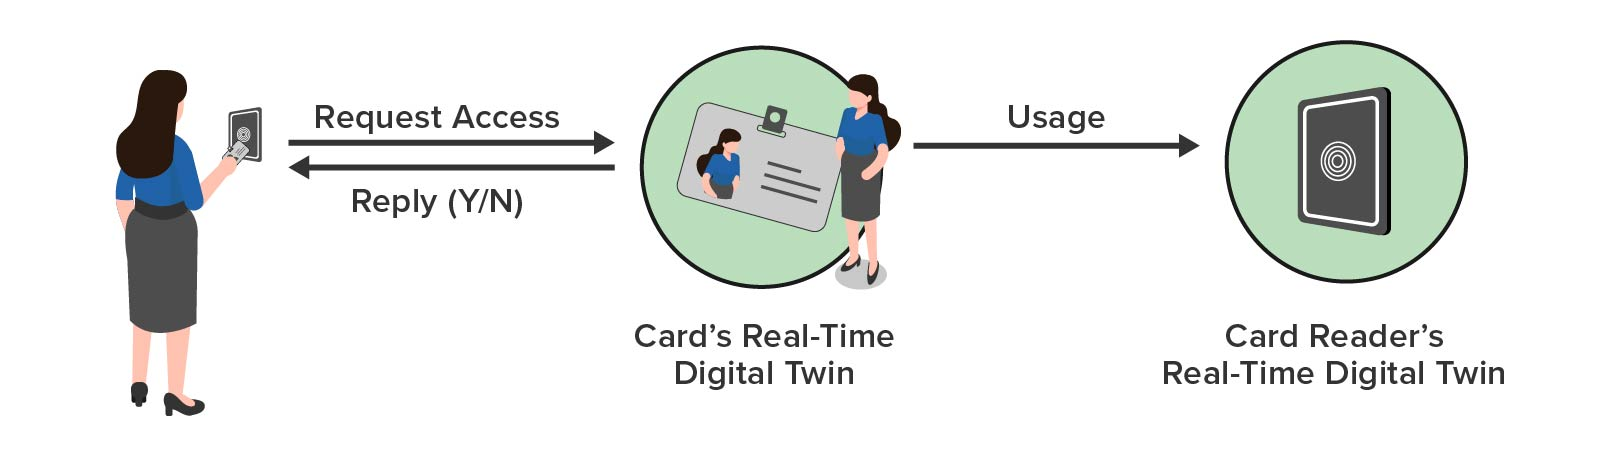 Scenario of using real-time digital twins for access control and usage tracking